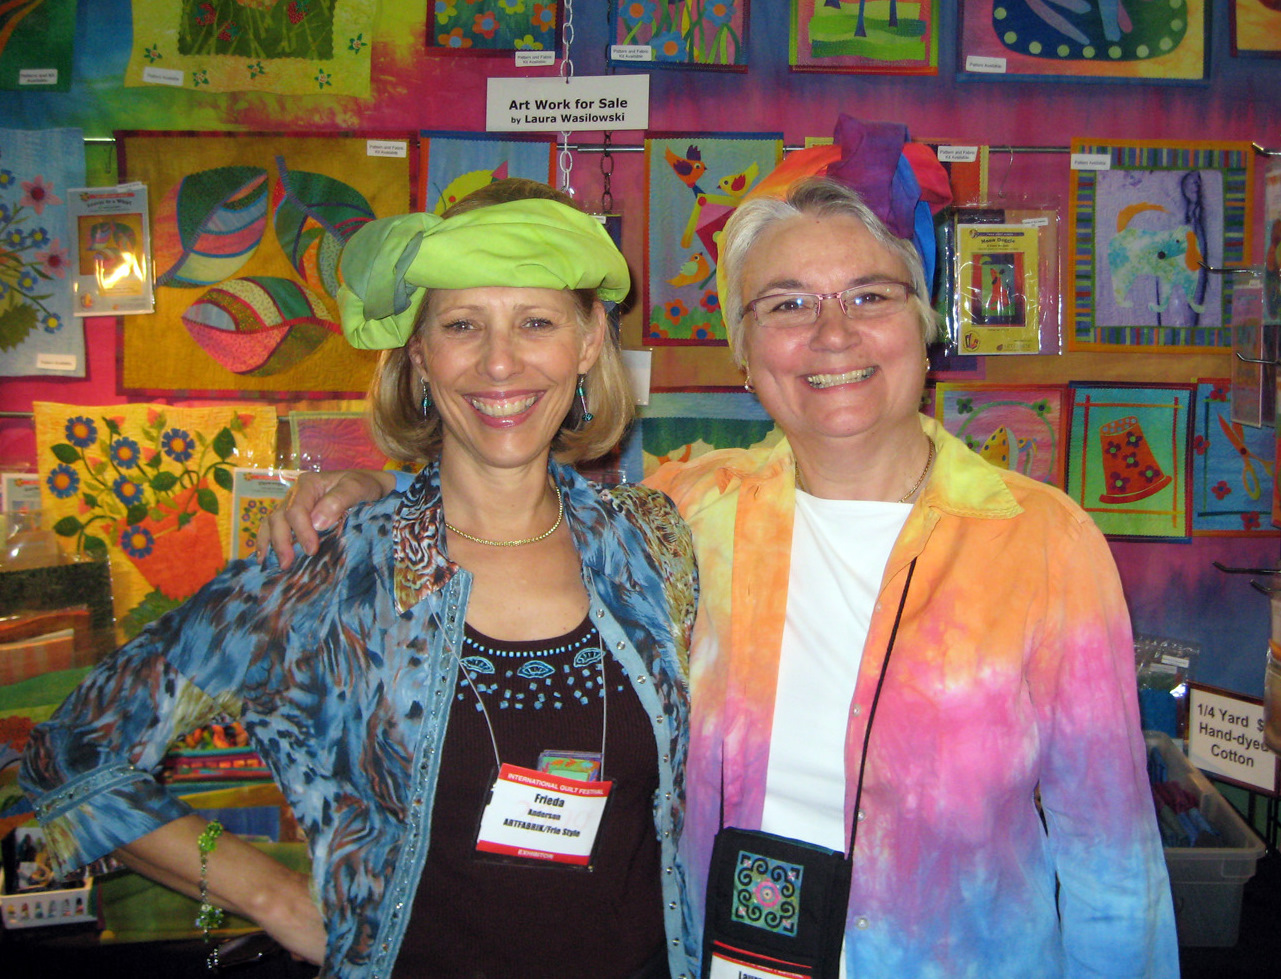 Frieda Anderson and Laura Wasilowski